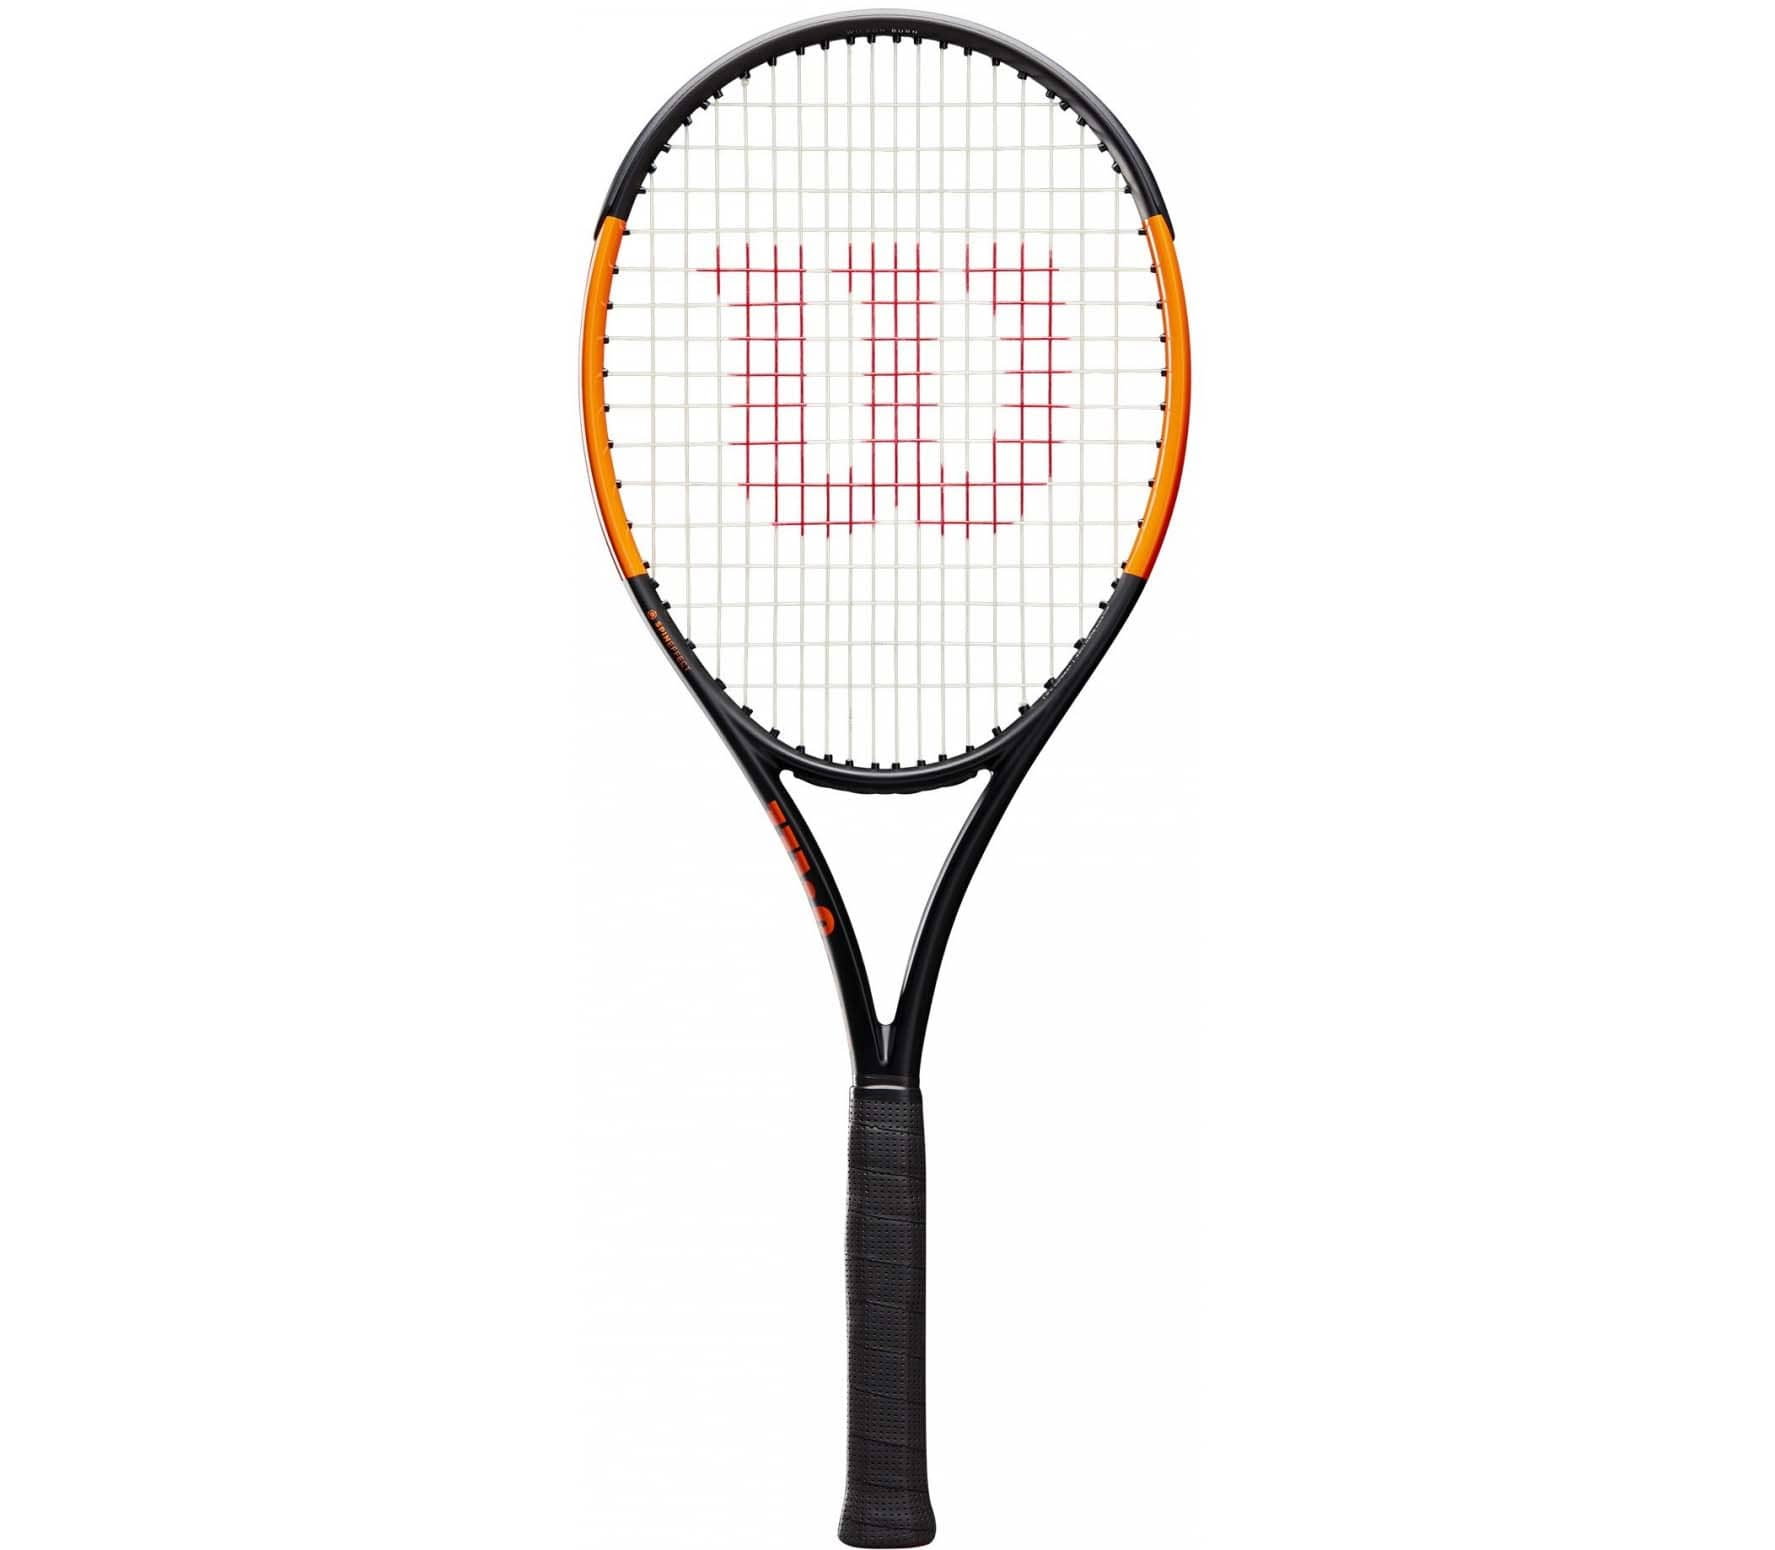 Wilson - Burn 100 ULS tennis racket (black/orange)